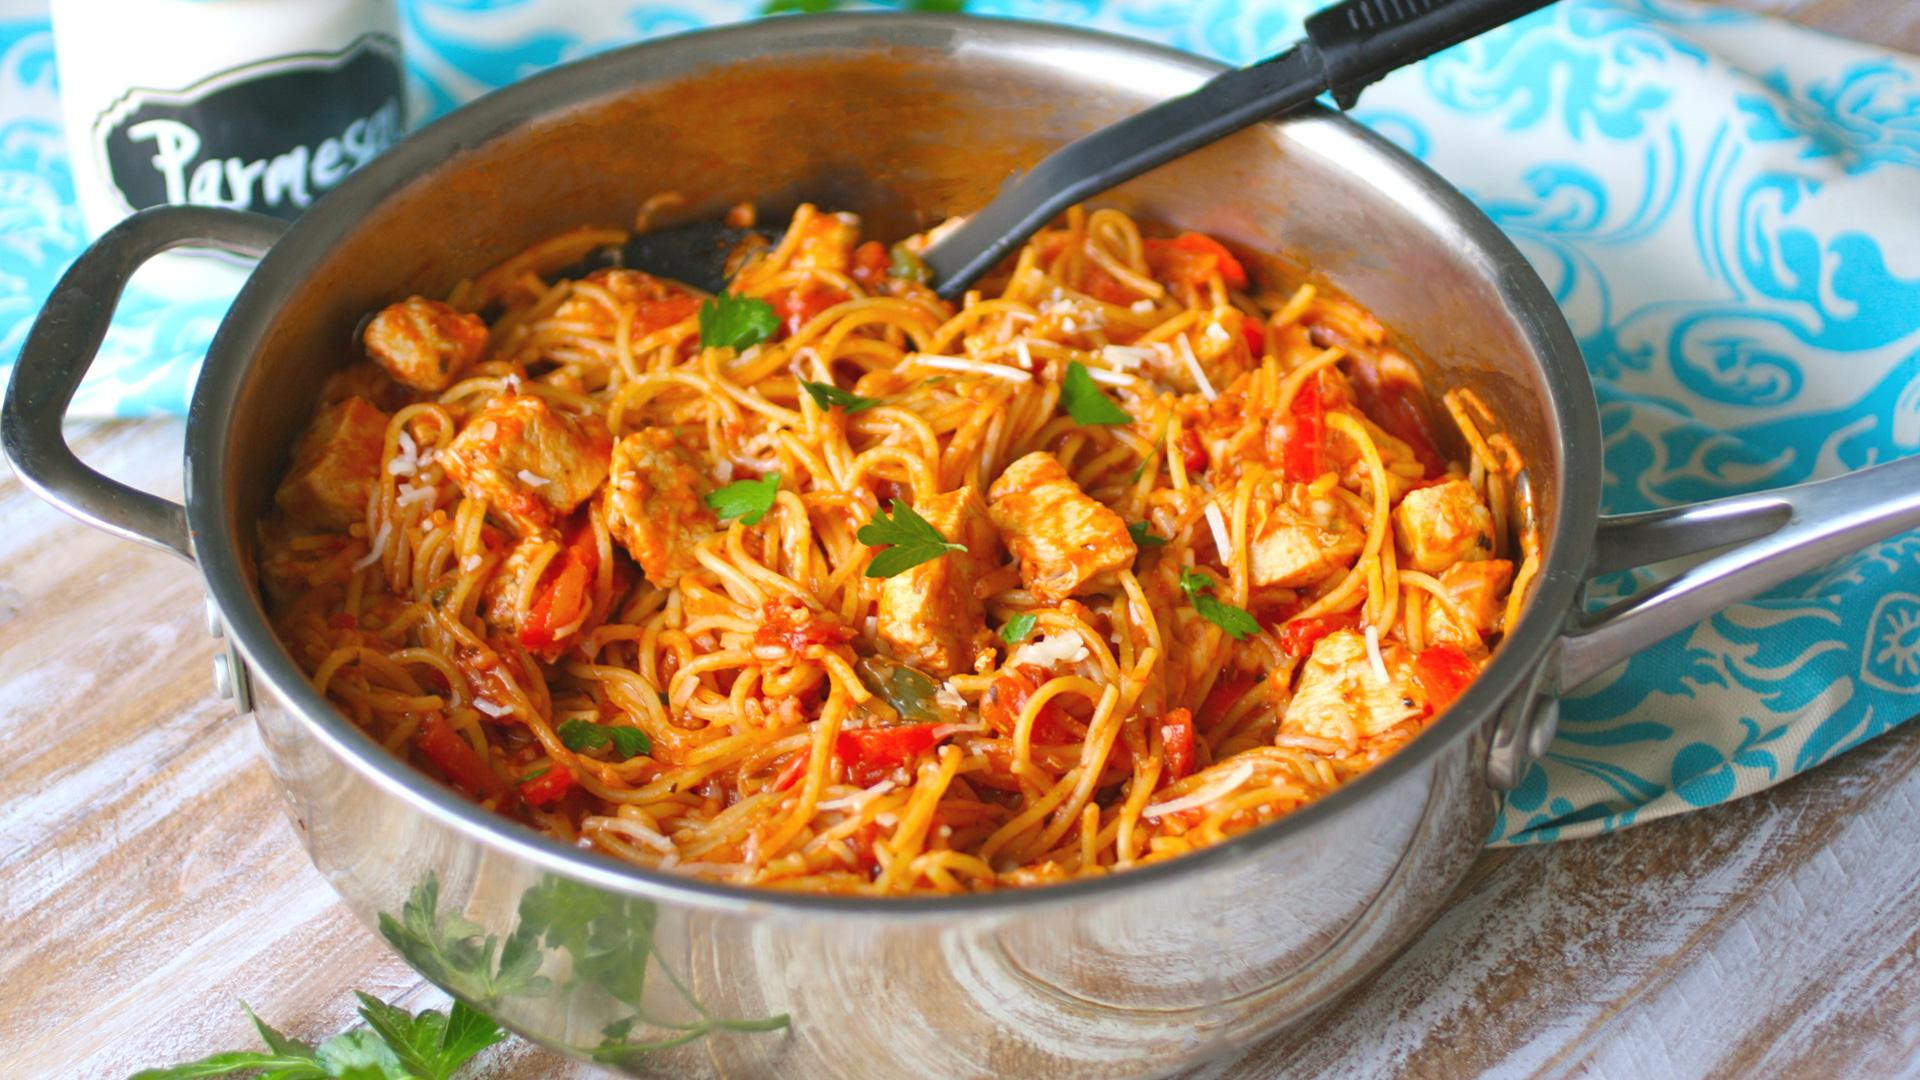 Spicy Dinner Recipes  Sunday dinner Spicy skillet chicken spaghetti